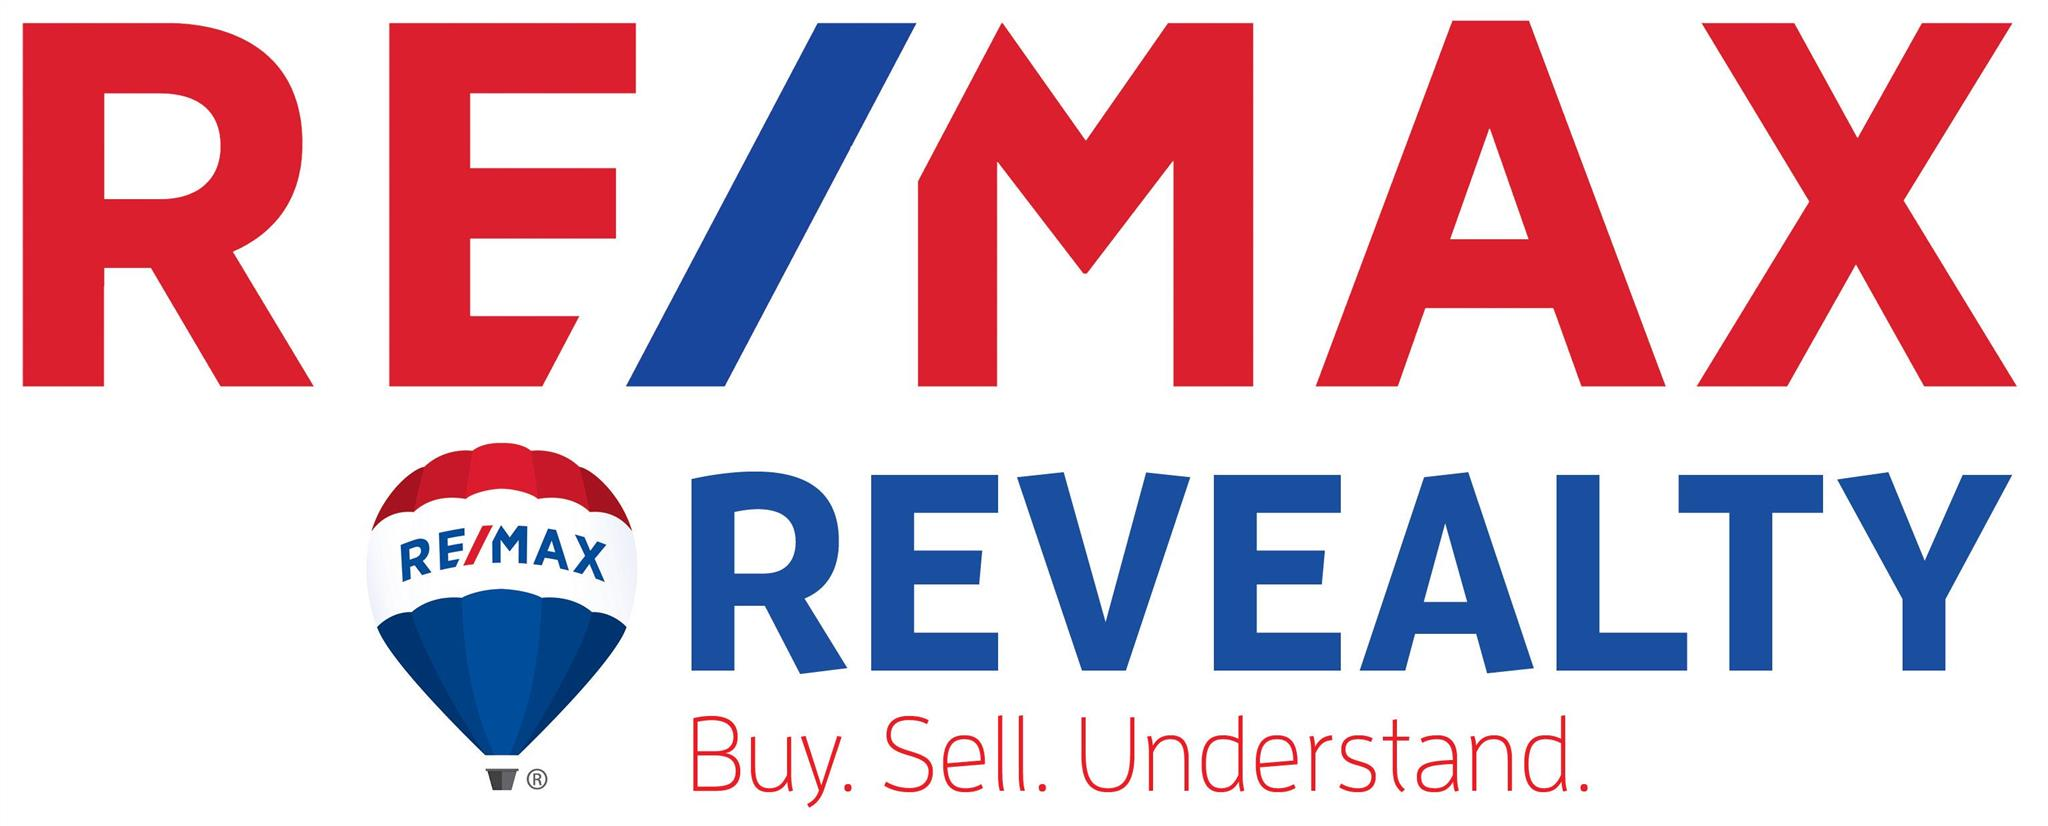 RE/MAX REVEALTY